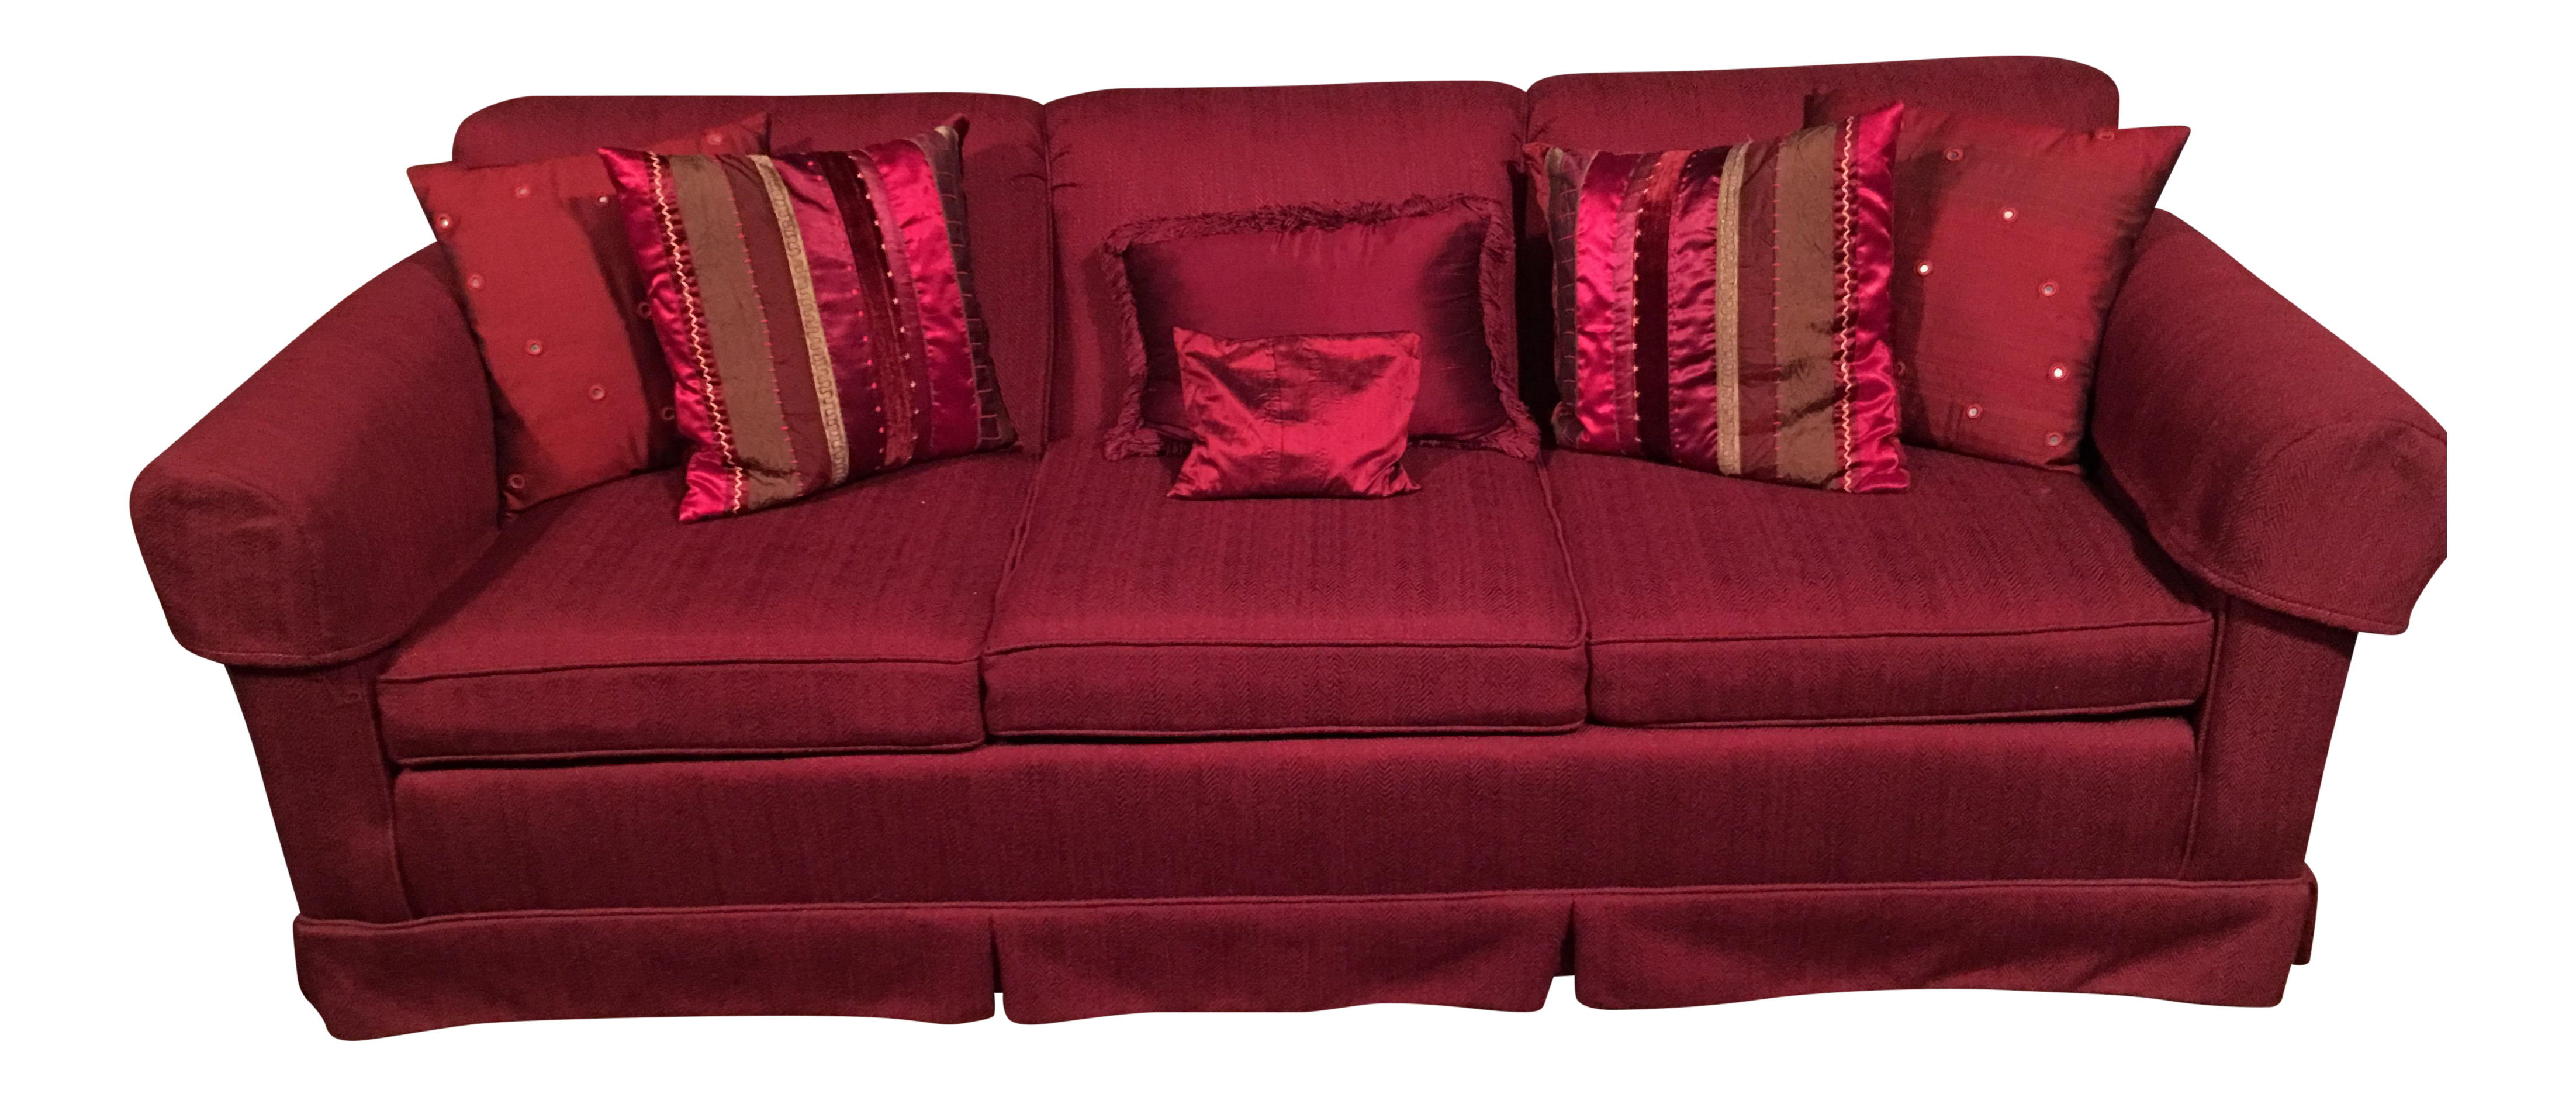 Ethan Allen Red Living Room Sofa & Decorative Pillows Chairish